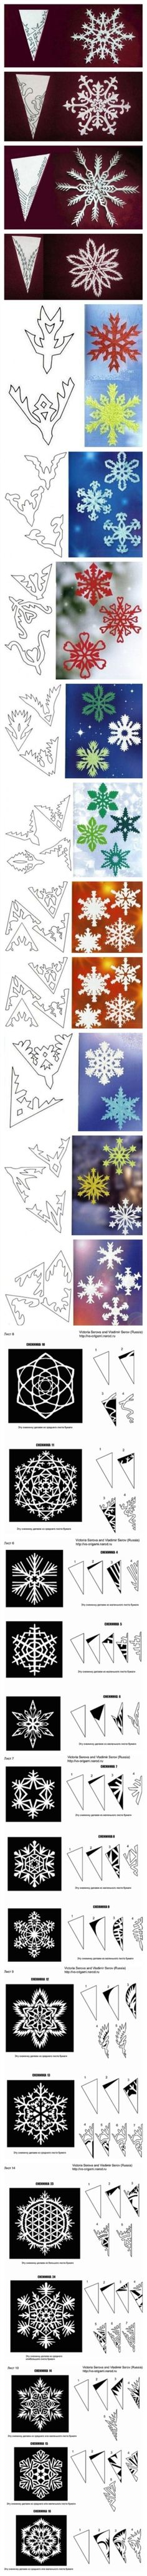 DIY Paper Snowflakes / once folded use losely what they show as the pattern for tons of great snowflakes  by AmandaGustin  | 25 Days of Christmas